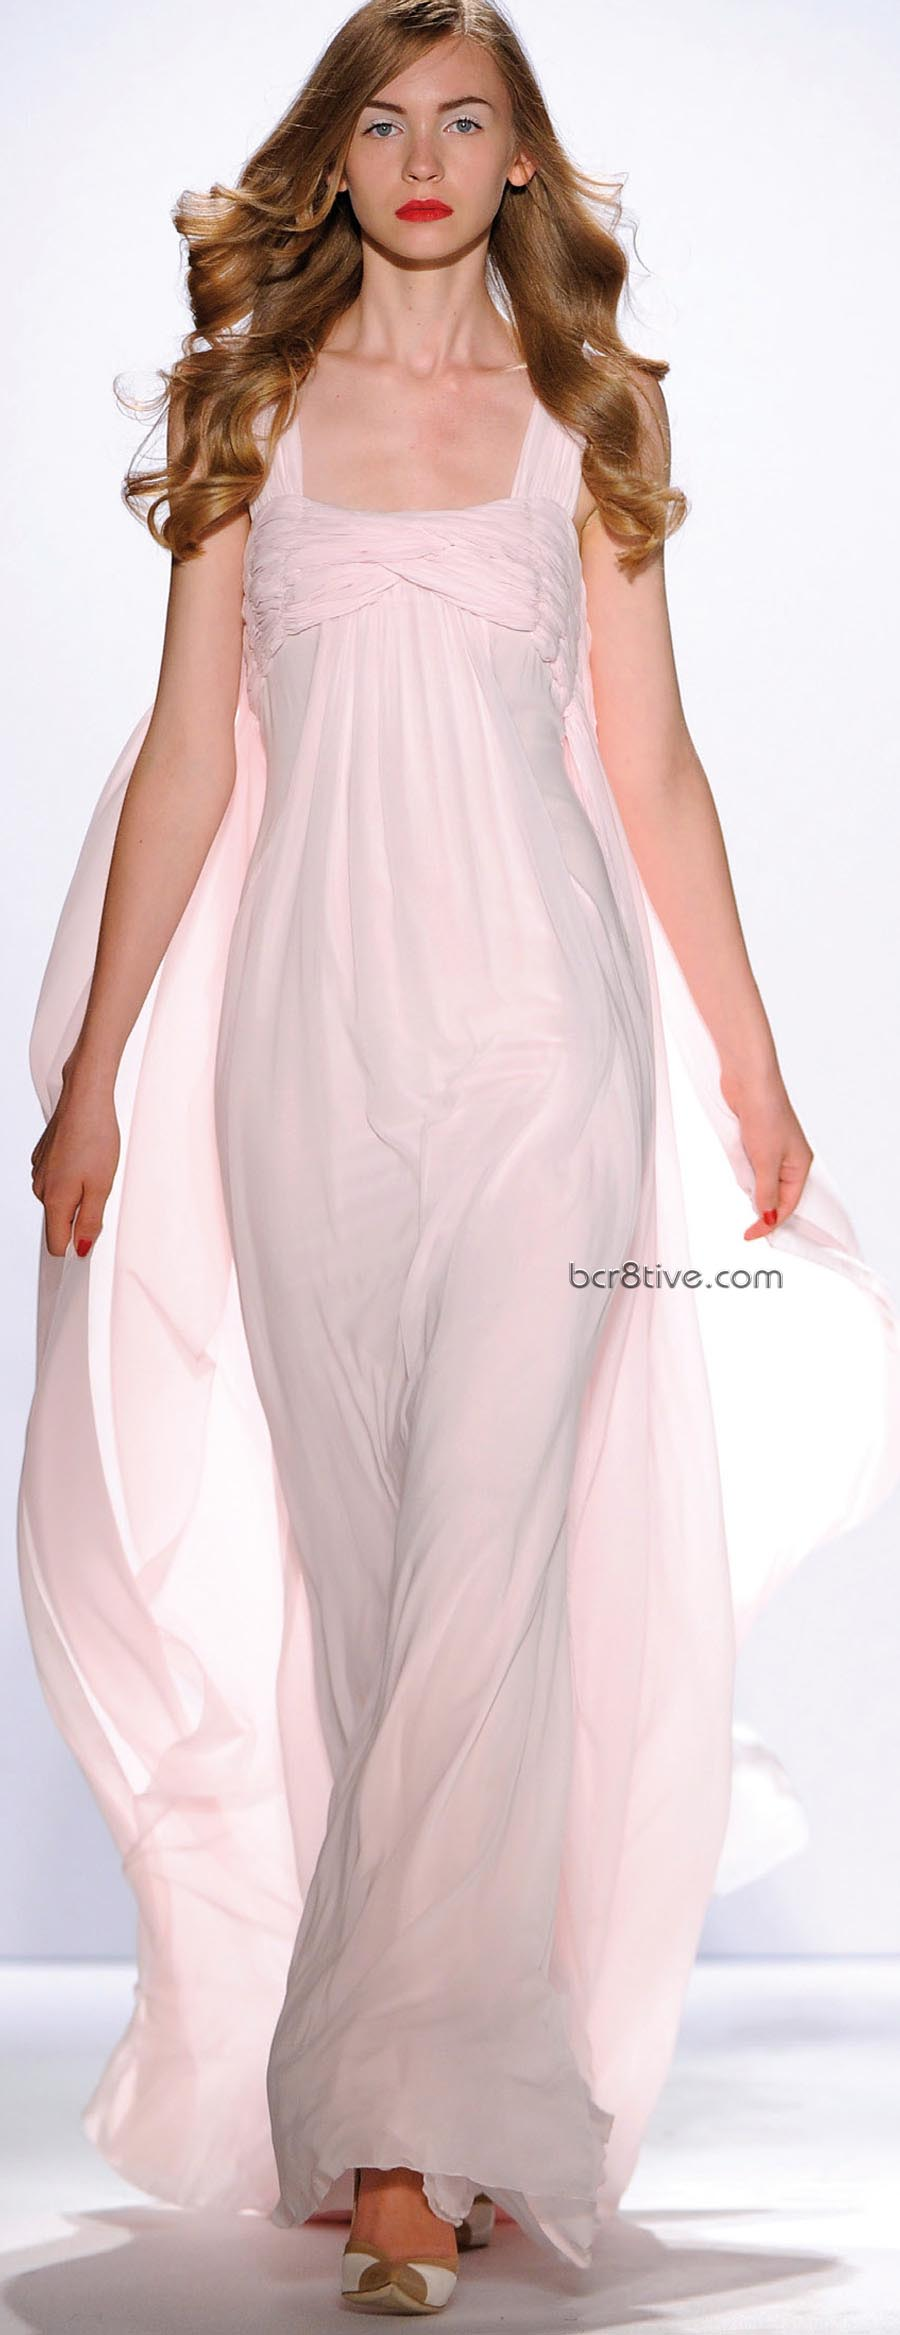 Gattinoni Spring Summer 2011 Ready to Wear - Pretty in Pink